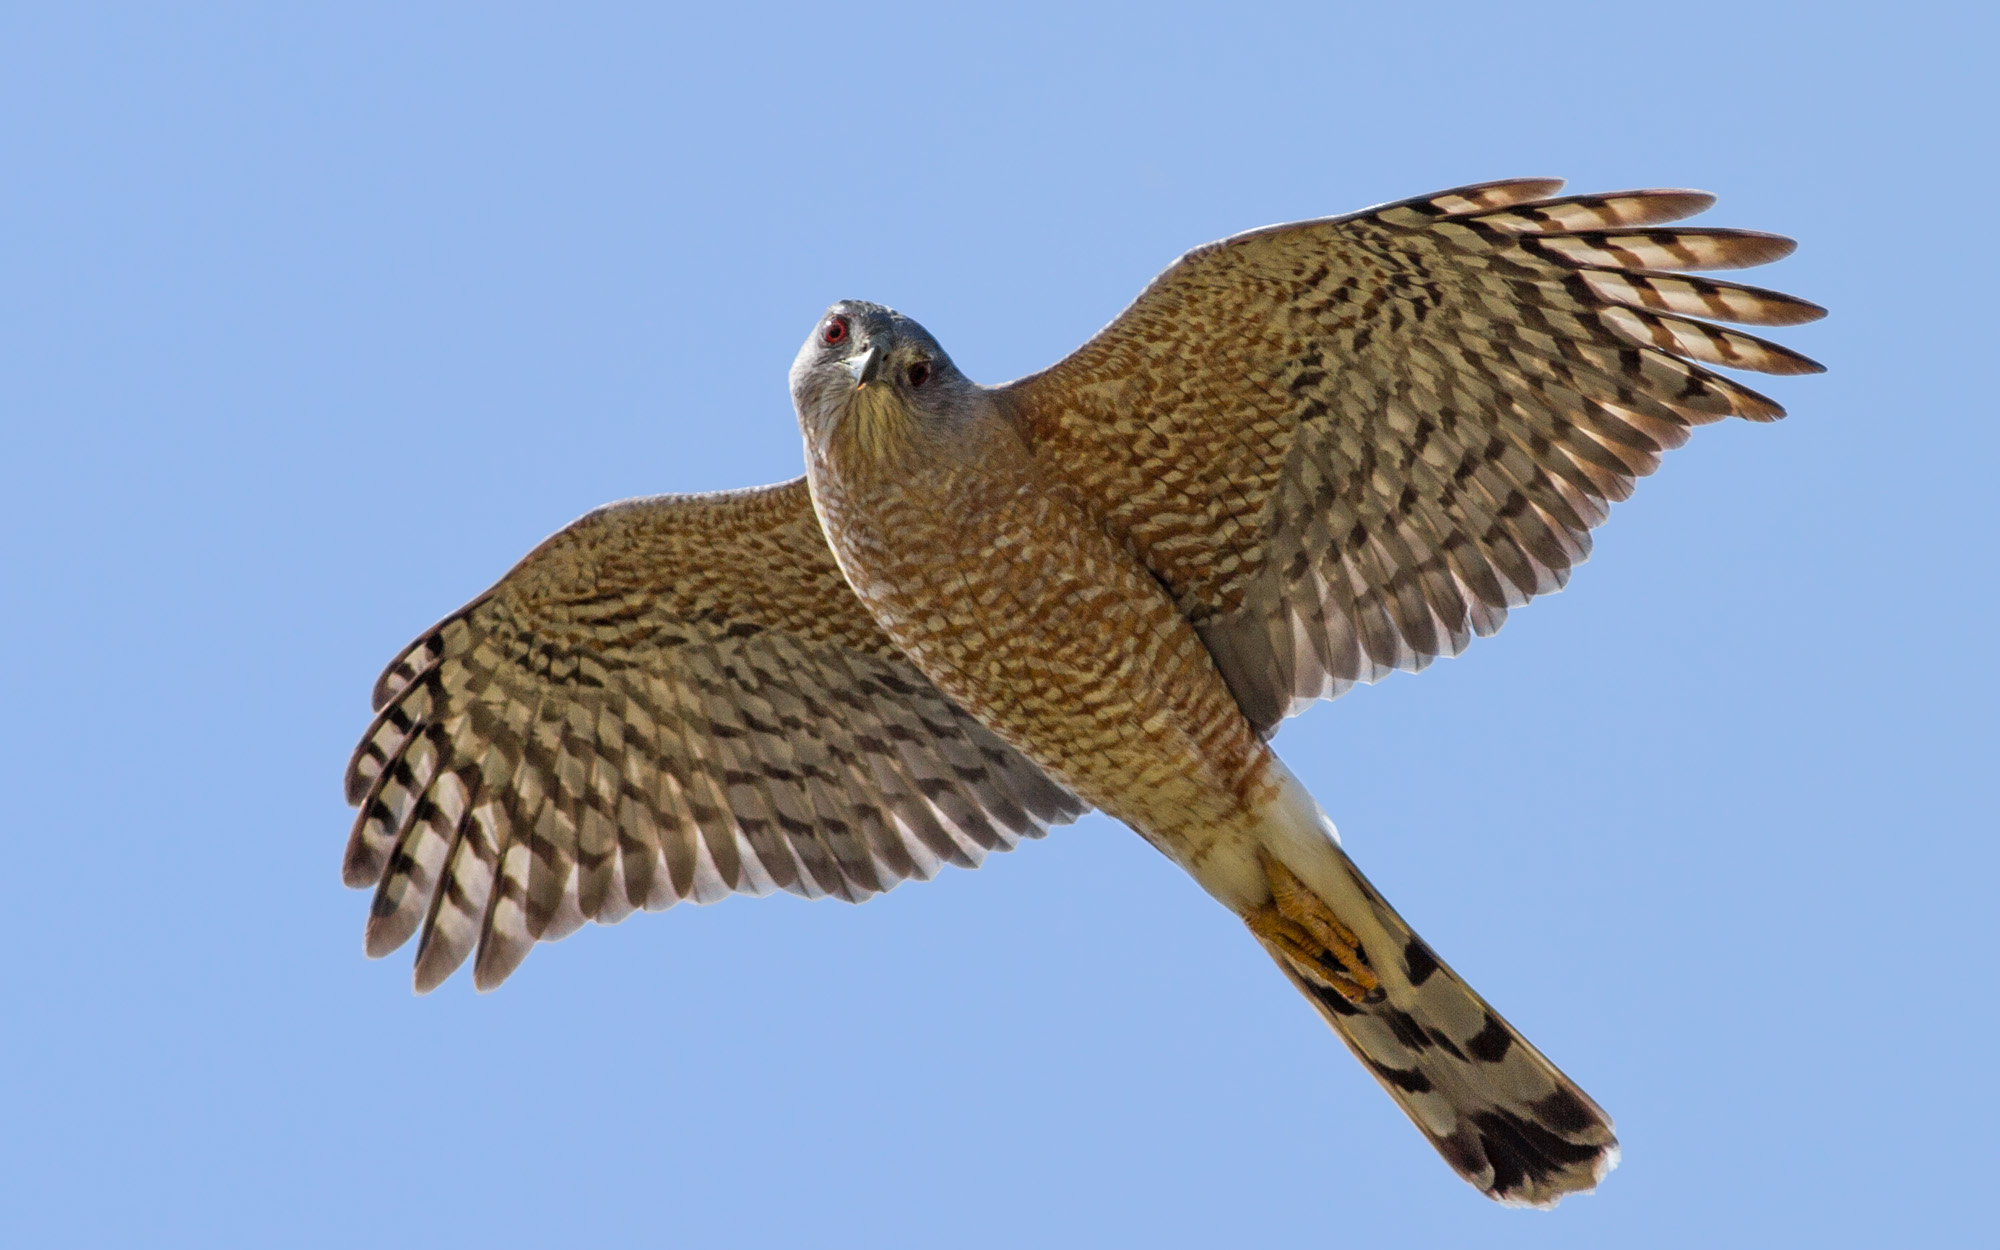 """- Cooper's Hawk (Accipiter cooperii)Native to North America and live in deciduous mixed forests. Cooper's Hawks look like larger versions of Sharp-shinned Hawks. They typically weigh 7.8-14.5 oz. and have a wingspan of 24.4-35.4 in. Cooper's Hawks communicate with a """"kak-kak-kak"""" noise. They eat small birds, eastern chipmunks, and other small mammals. They are protected on the US Migratory Bird lists.Photo Credits: Fyn Kynd"""